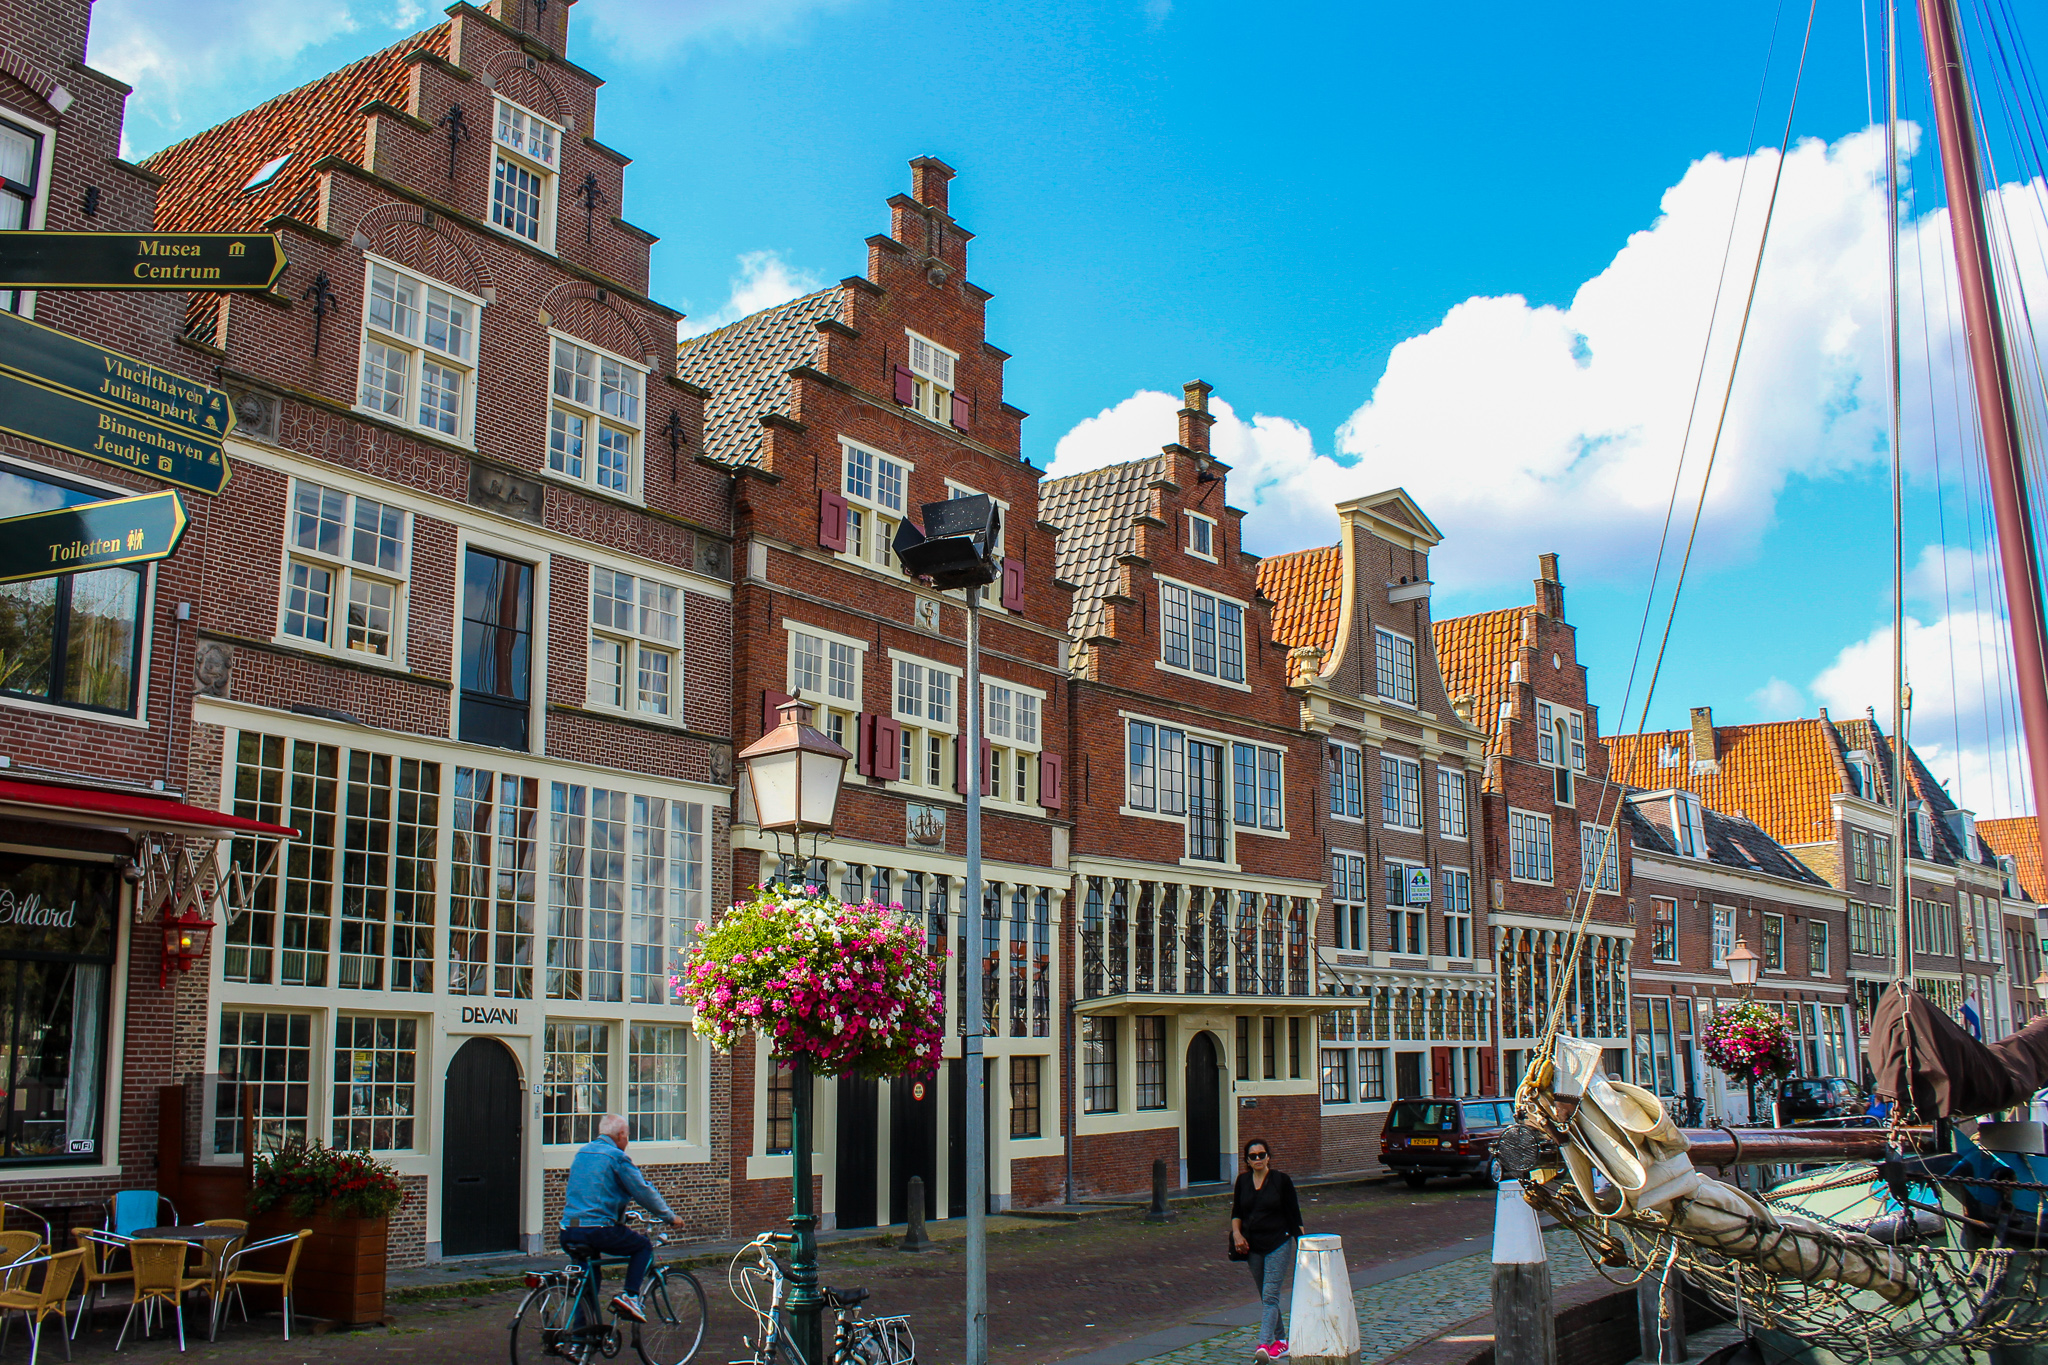 best day trip from amsterdam: go to hoorn and see the harbor